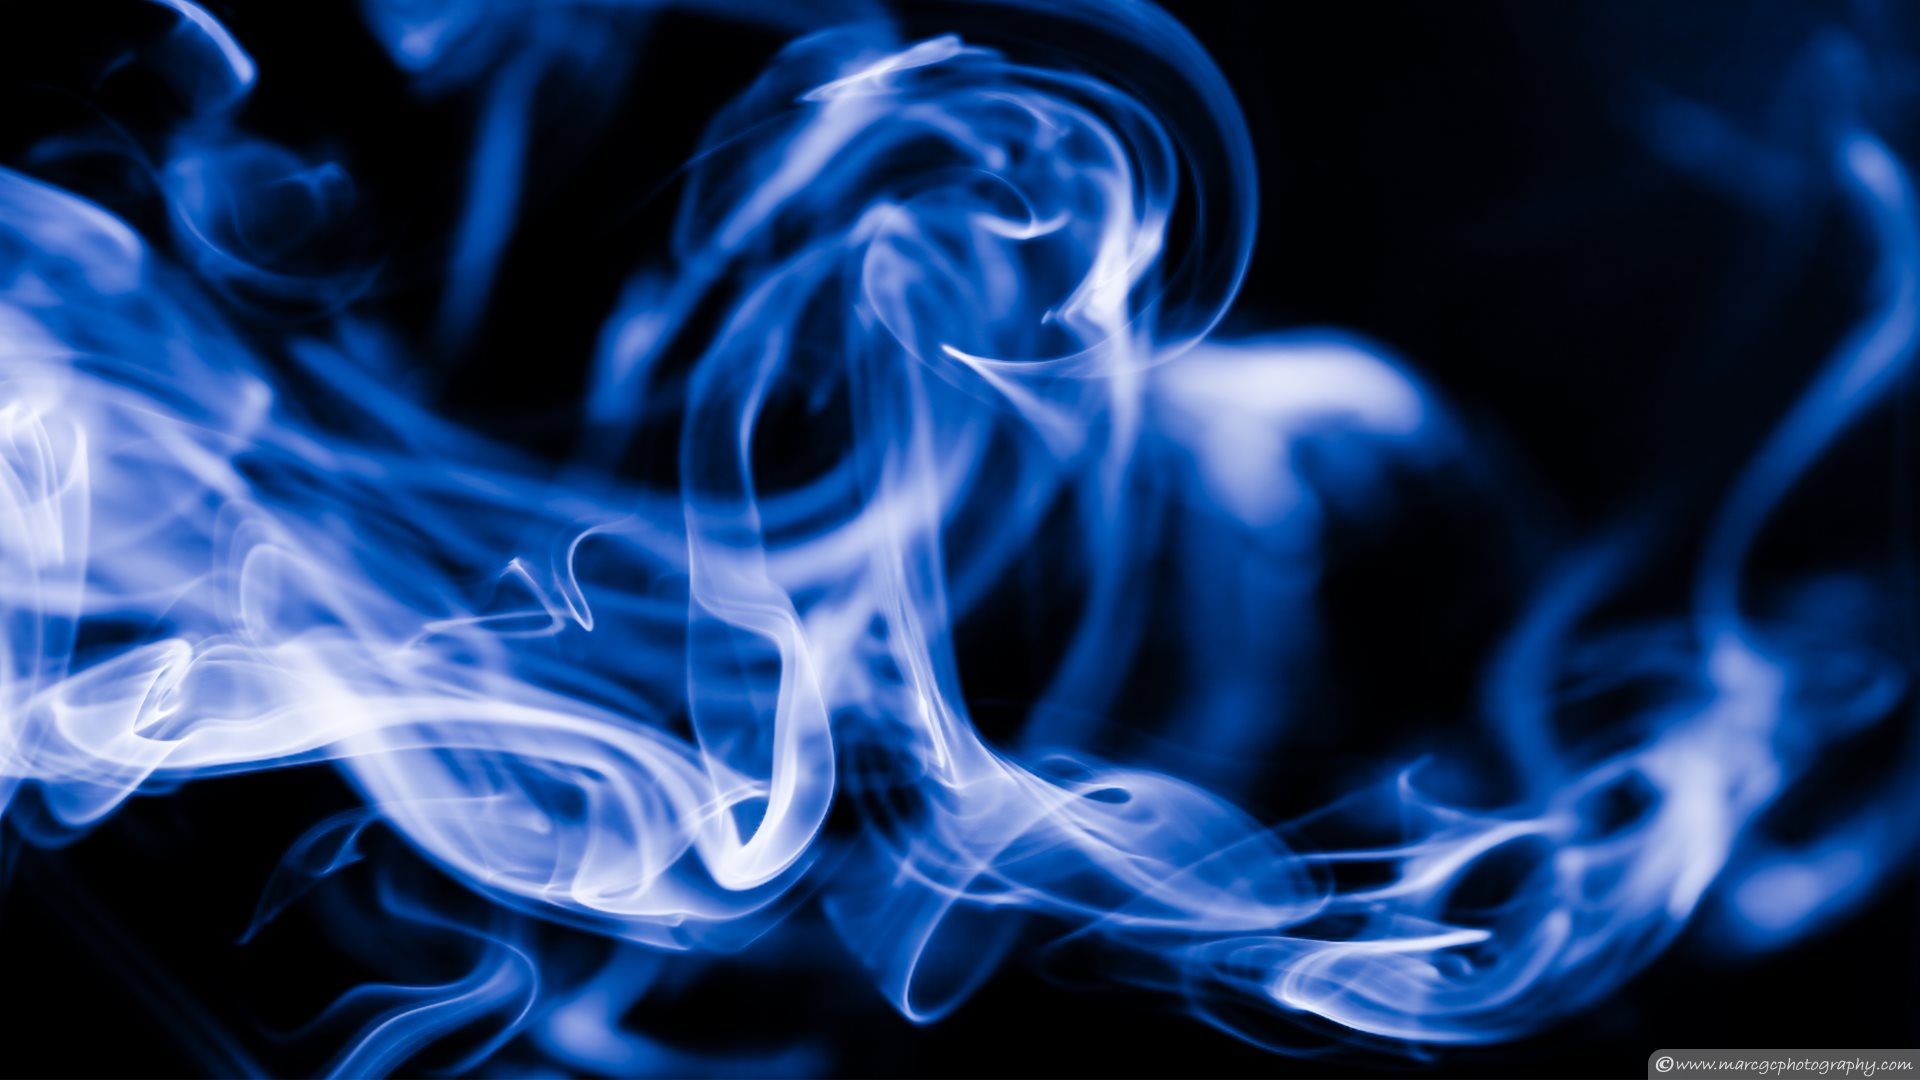 6 smoking hd wallpapers - DriverLayer Search Engine